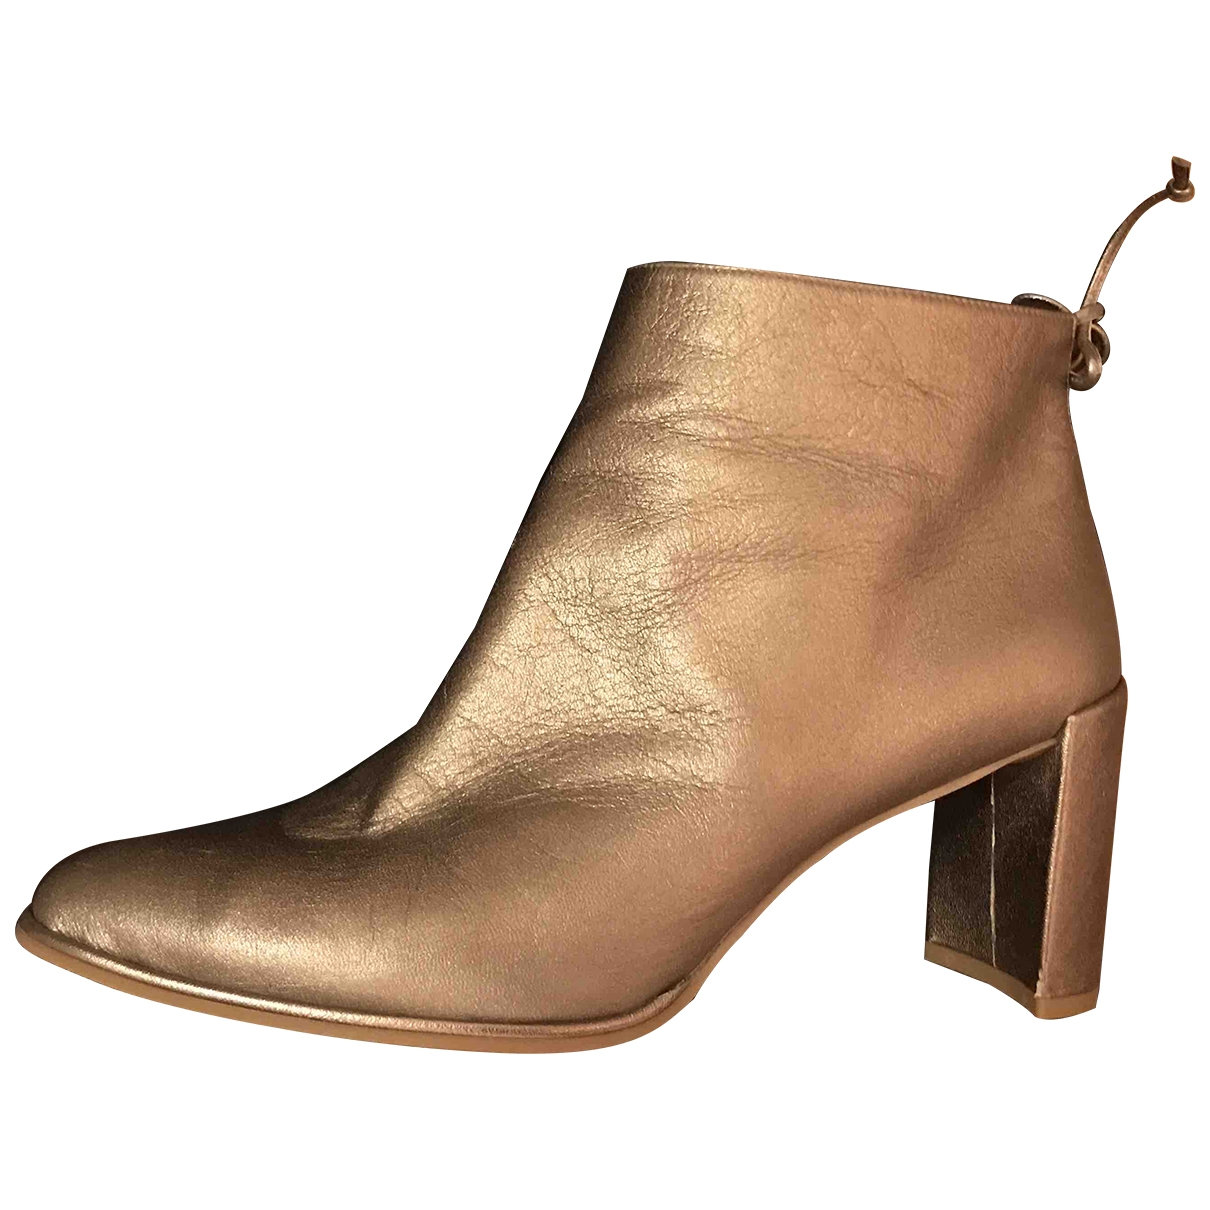 Stuart Weitzman \N Metallic Leather Ankle boots for Women 41 EU